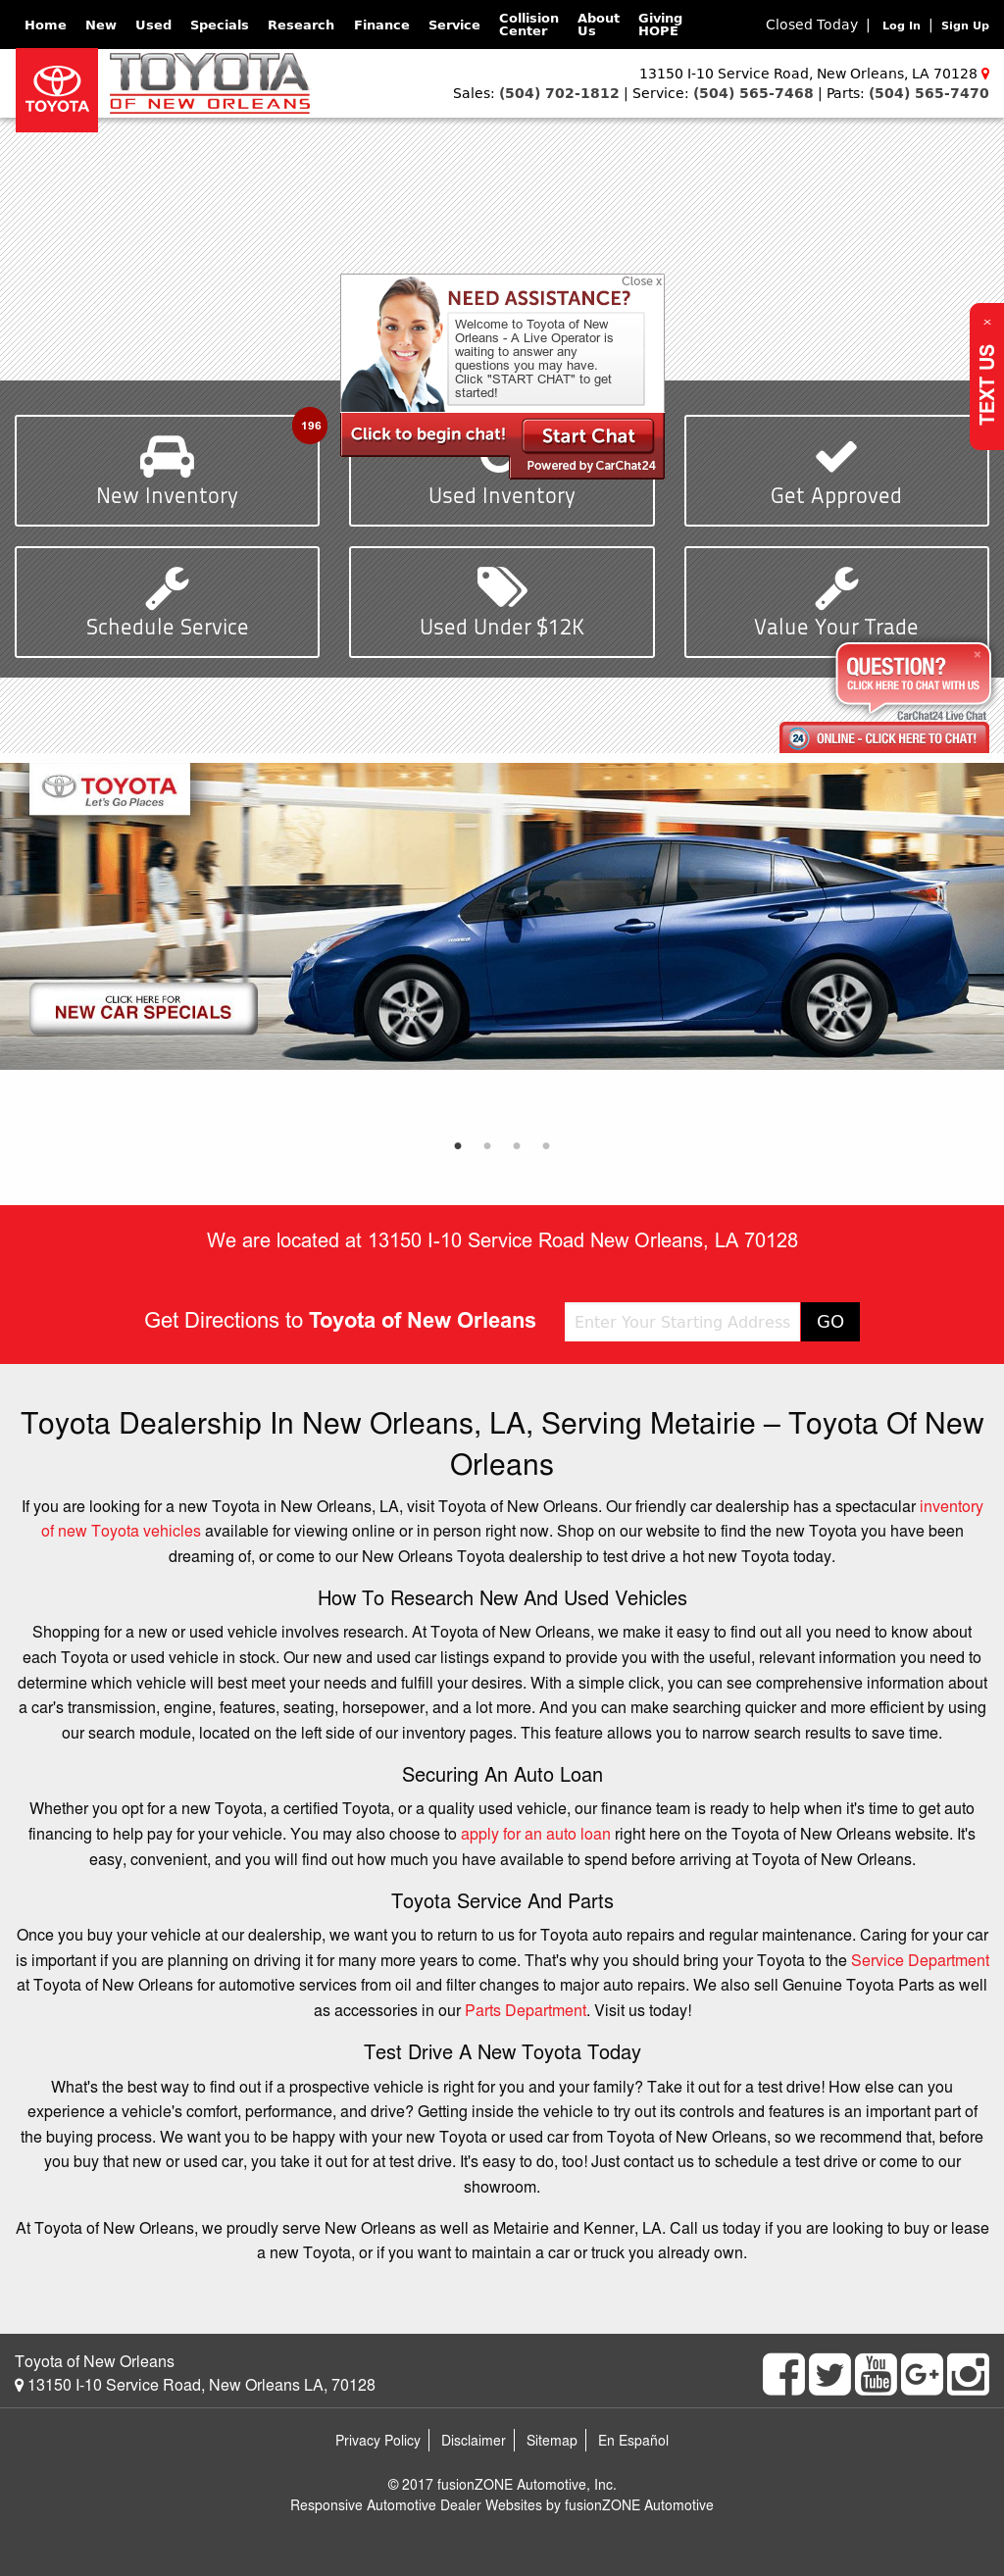 Toyota Of New Orleans Competitors Revenue And Employees Owler